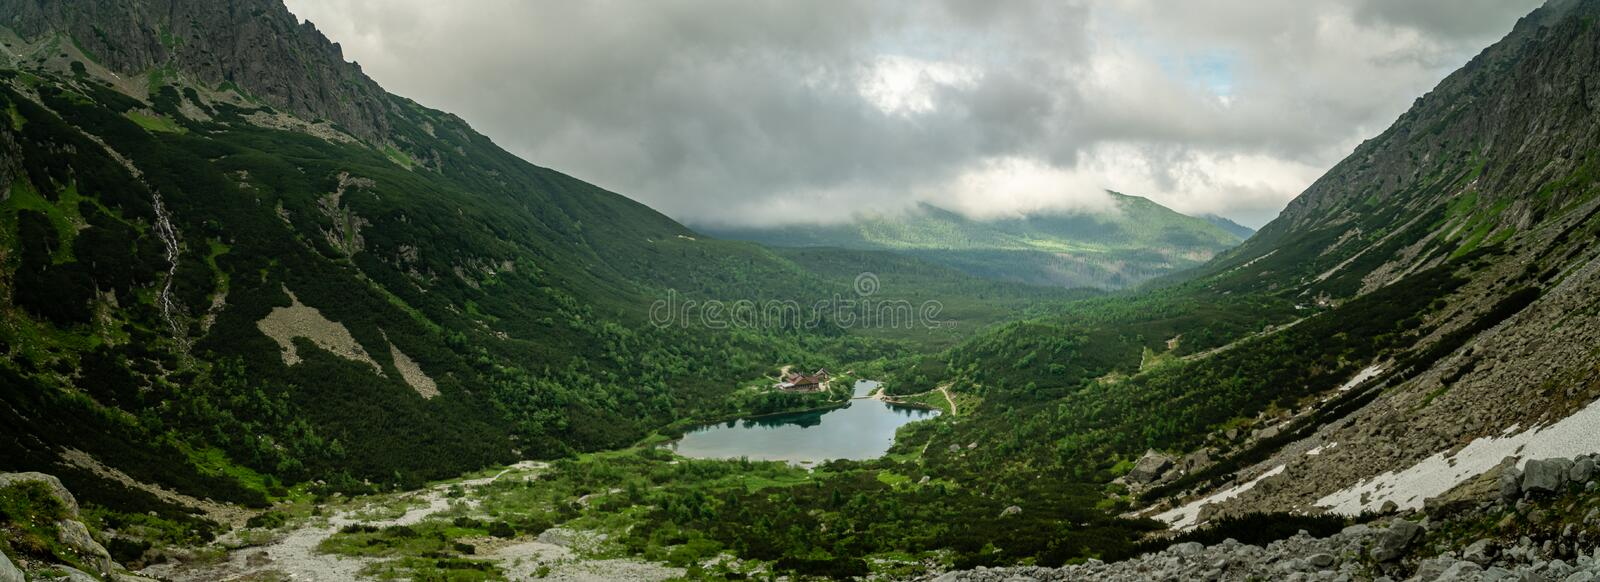 Green lake with mountain house in High Tatras valley.  royalty free stock photography